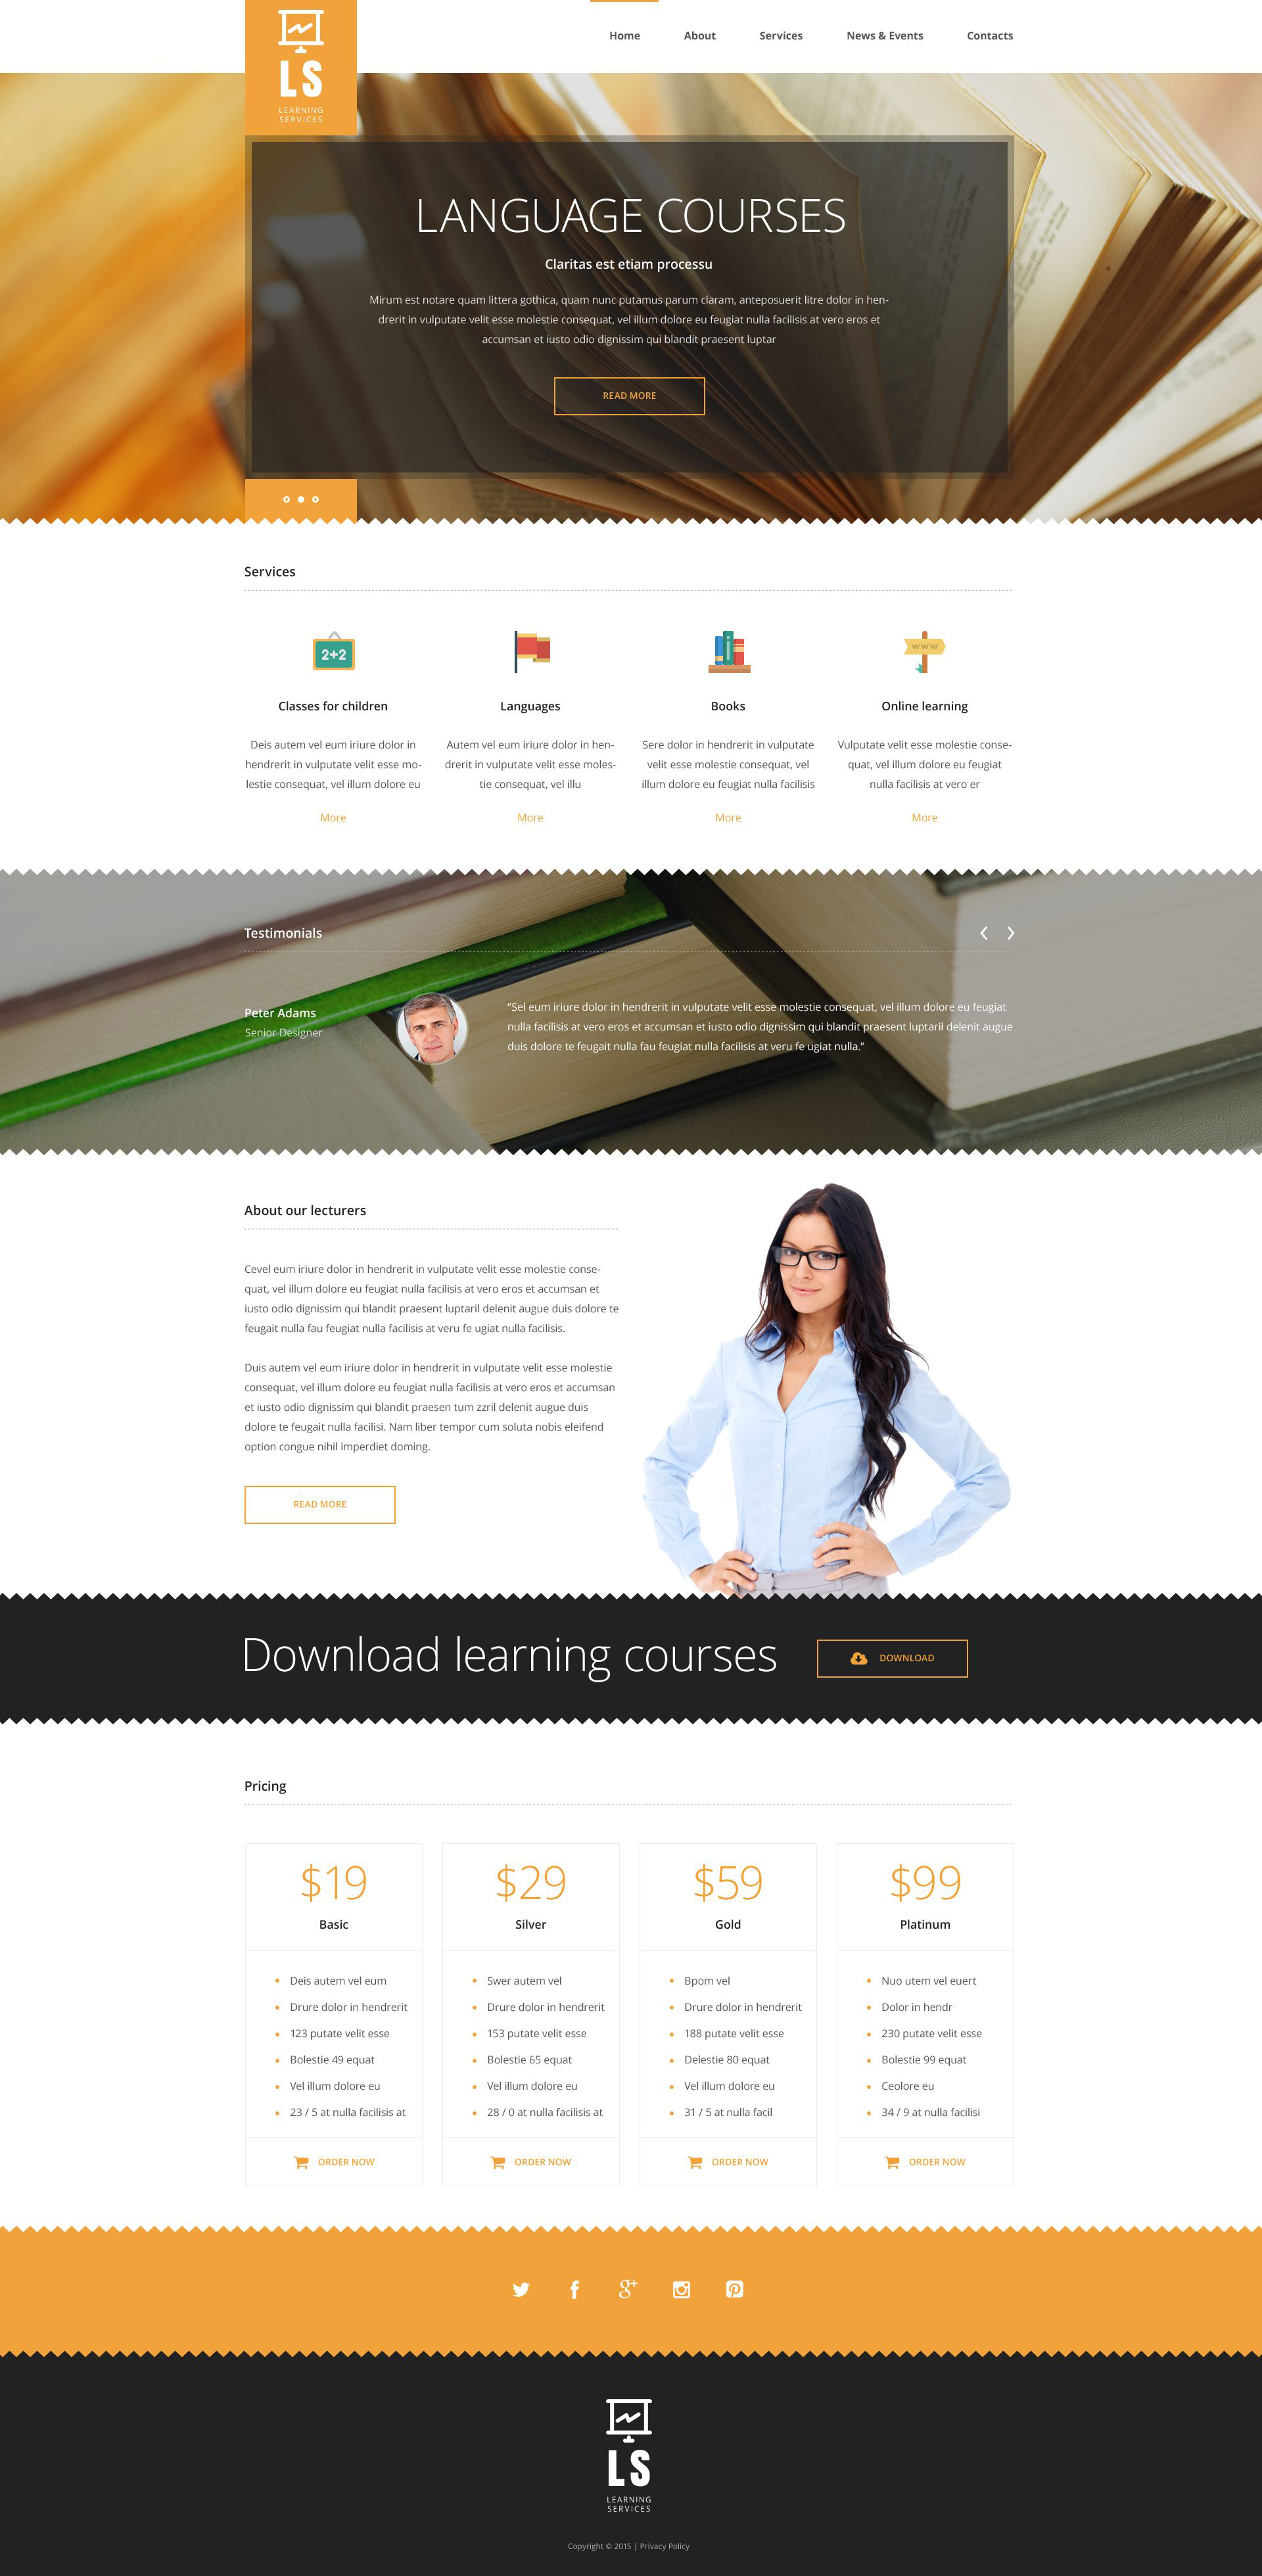 The Education Center Bootstrap Design 53682, one of the best website templates of its kind (education, most popular), also known as education center website template, college website template, science website template, admission website template, faculty website template, department website template, class website template, alumni website template, student website template, professor website template, enrolment website template, union website template, library website template, auditorium website template, graduate website template, direction website template, tests website template, entrance website template, examination website template, exam website template, sport website template, community website template, party website template, administration website template, rector website template, head website template, dean website template, coll and related with education center, college, science, admission, faculty, department, class, alumni, student, professor, enrolment, union, library, auditorium, graduate, direction, tests, entrance, examination, exam, sport, community, party, administration, rector, head, dean, coll, etc.